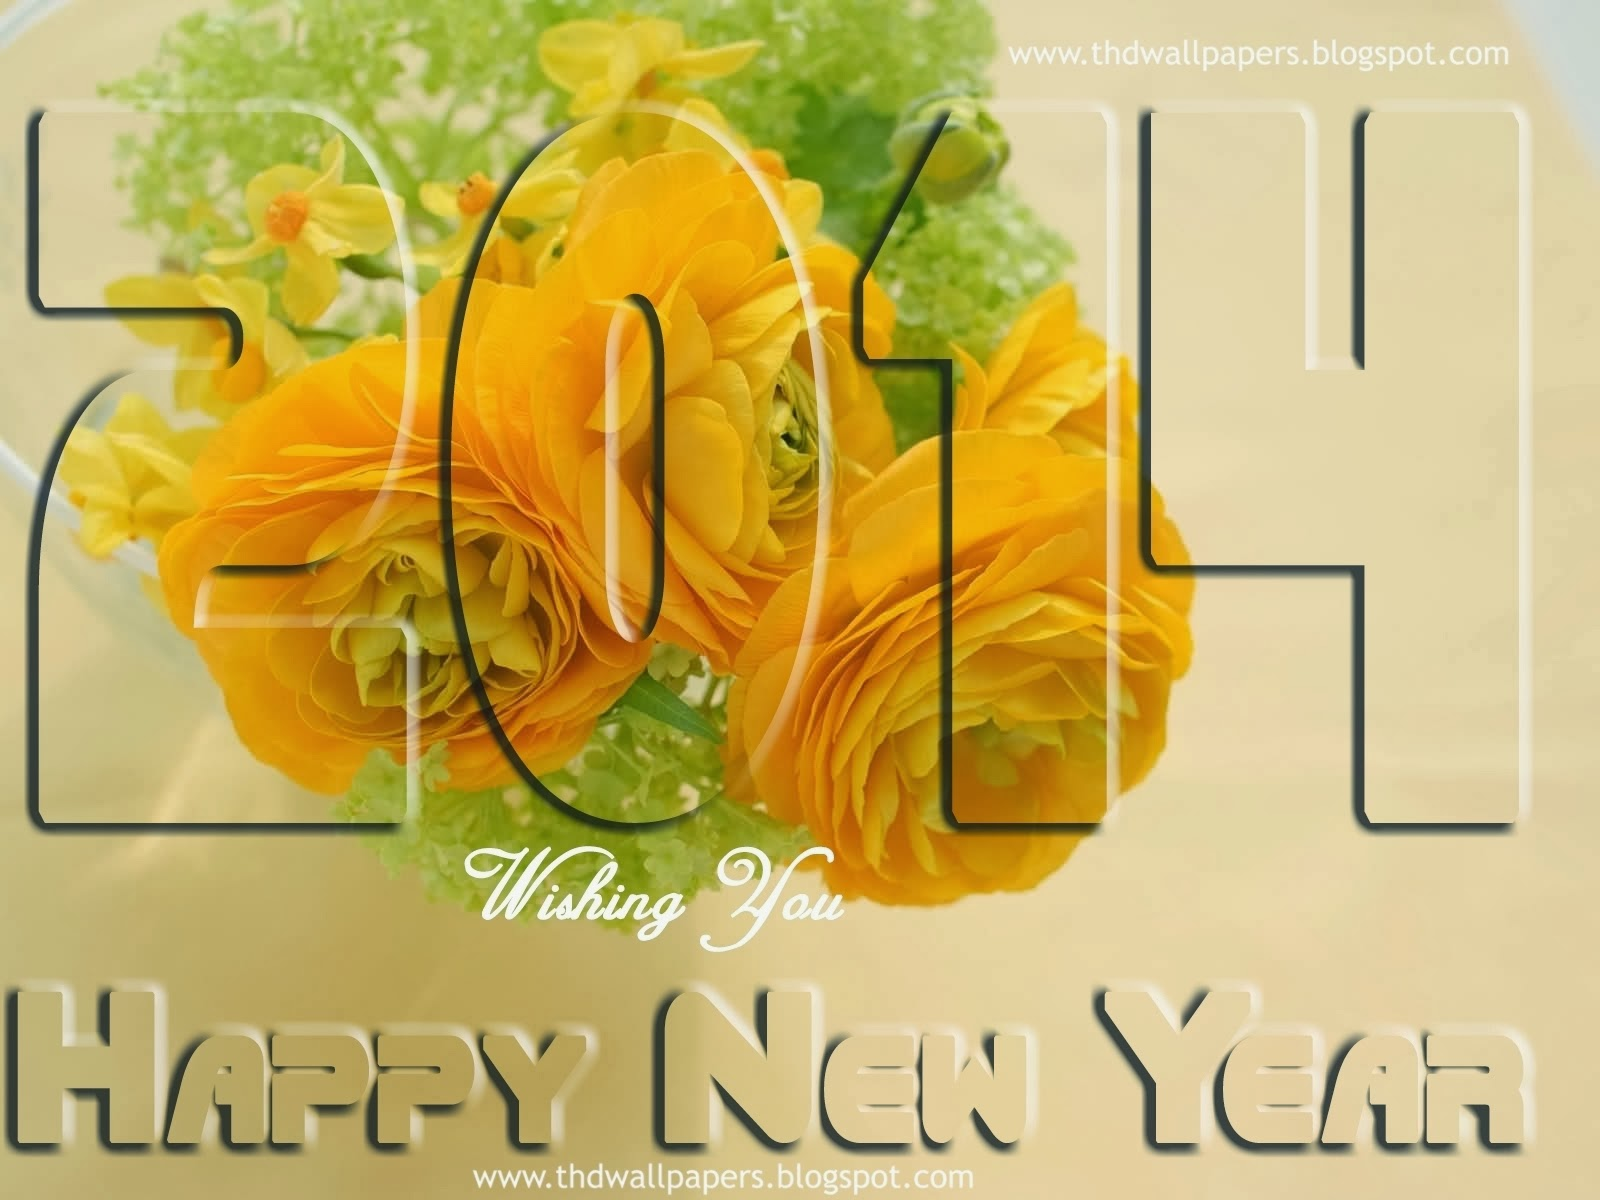 Beautiful Happy New Year Wishes Greetings Photos Cards Wallpapers 2014.11 Happy New Year E Cards Free 2014